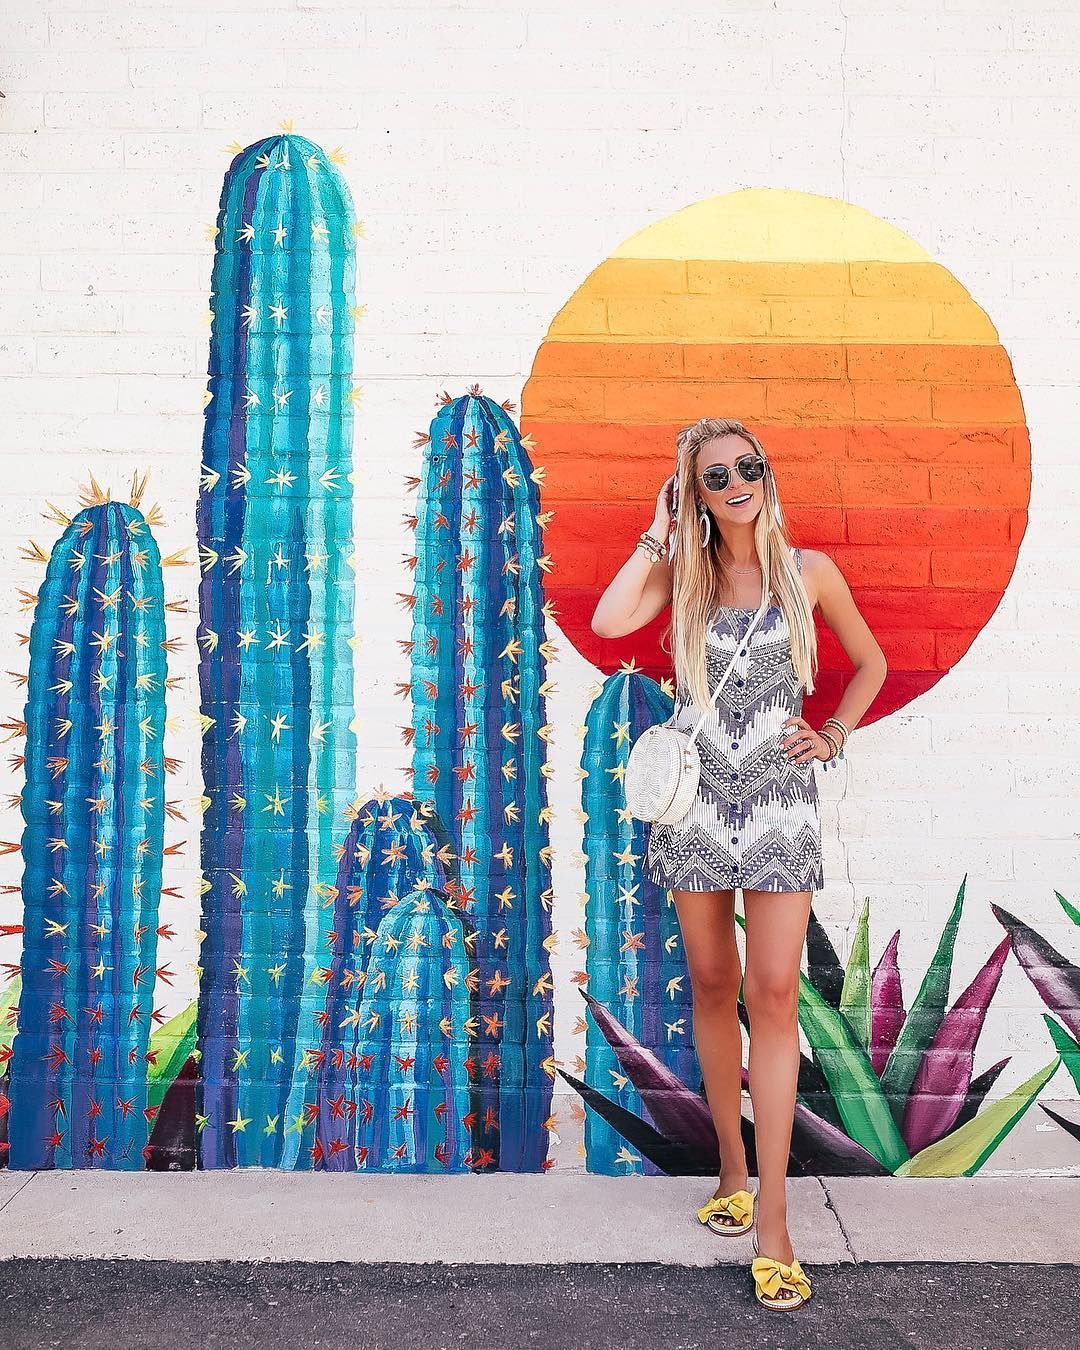 Most Instagrammable Wall In Scottsdale It S That Hot Sunset Mural Outside Of Geisha A Go Go In Old Town 7150 Murals Street Art Mural Art Mural Wall Art